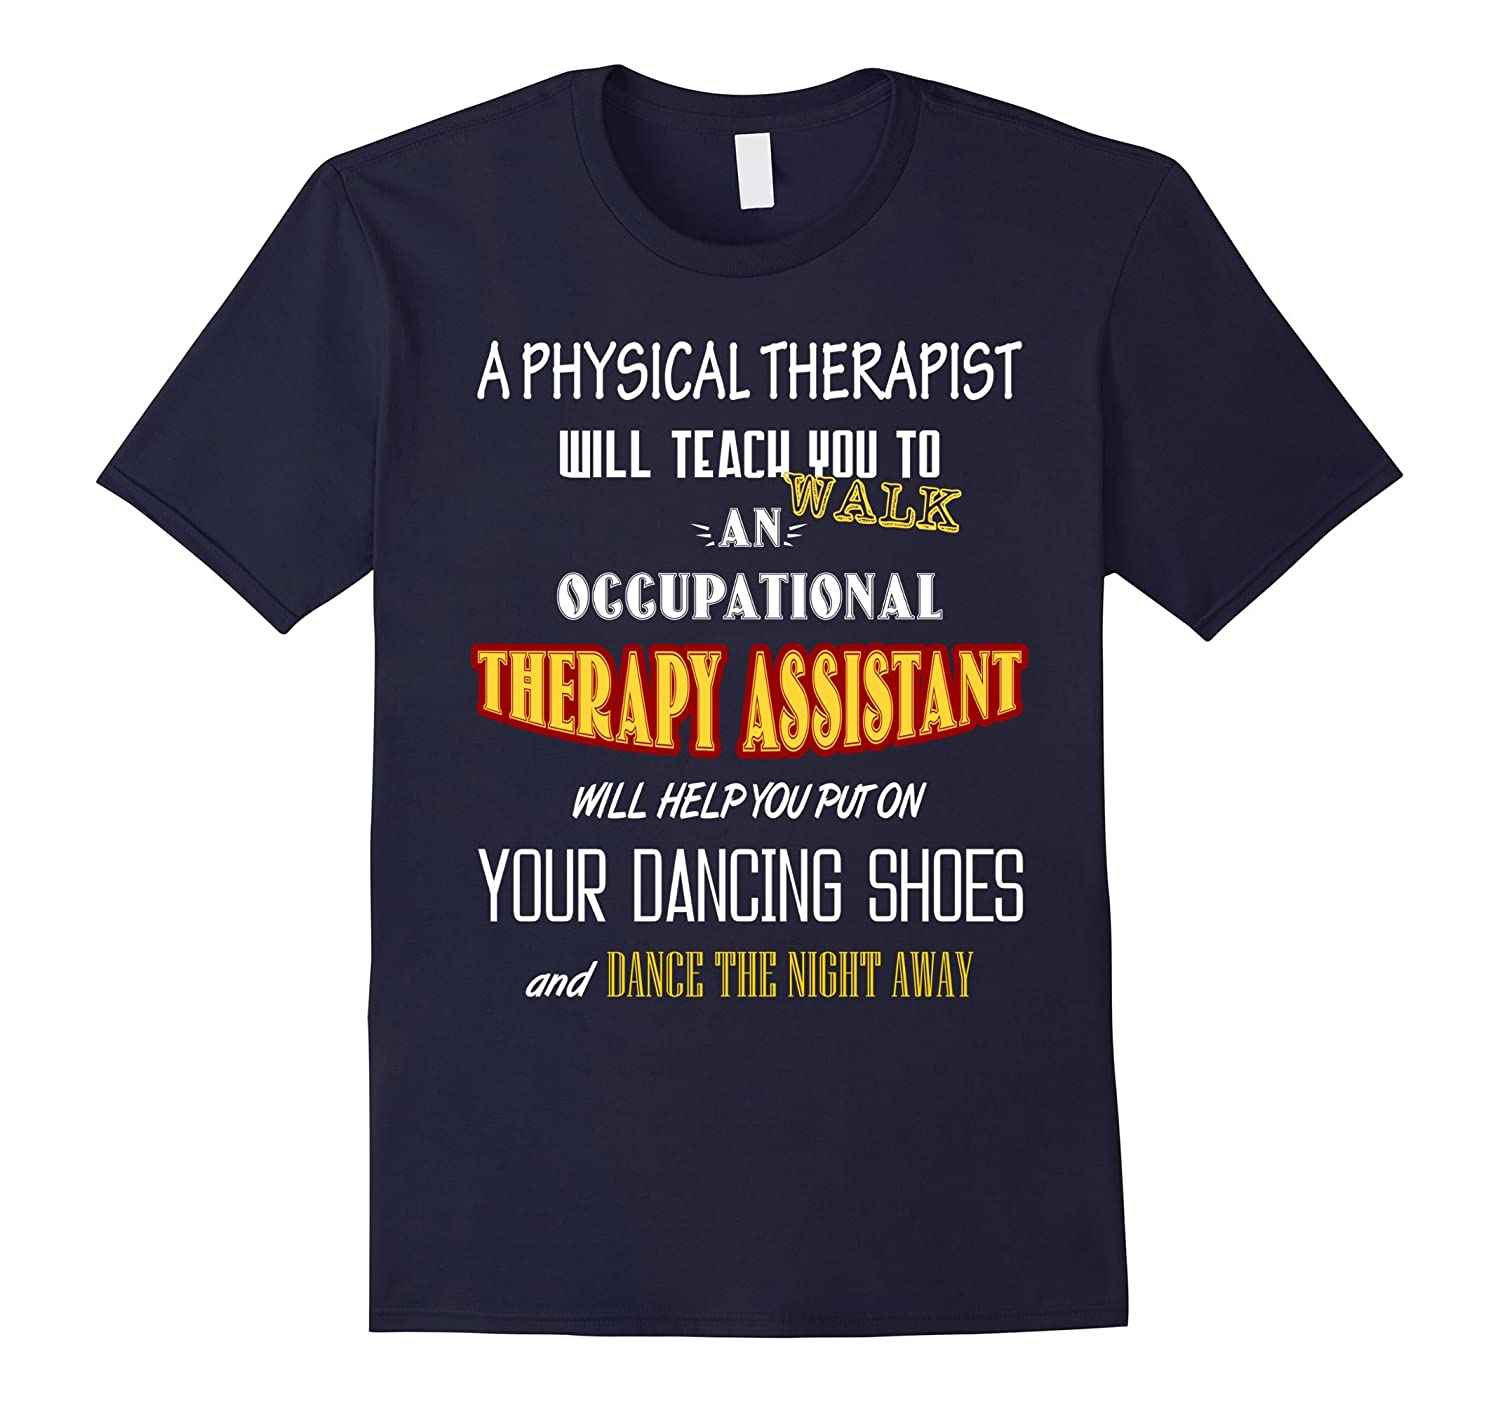 Occupational Therapy Assistant T-shirt - Will help you put-PL